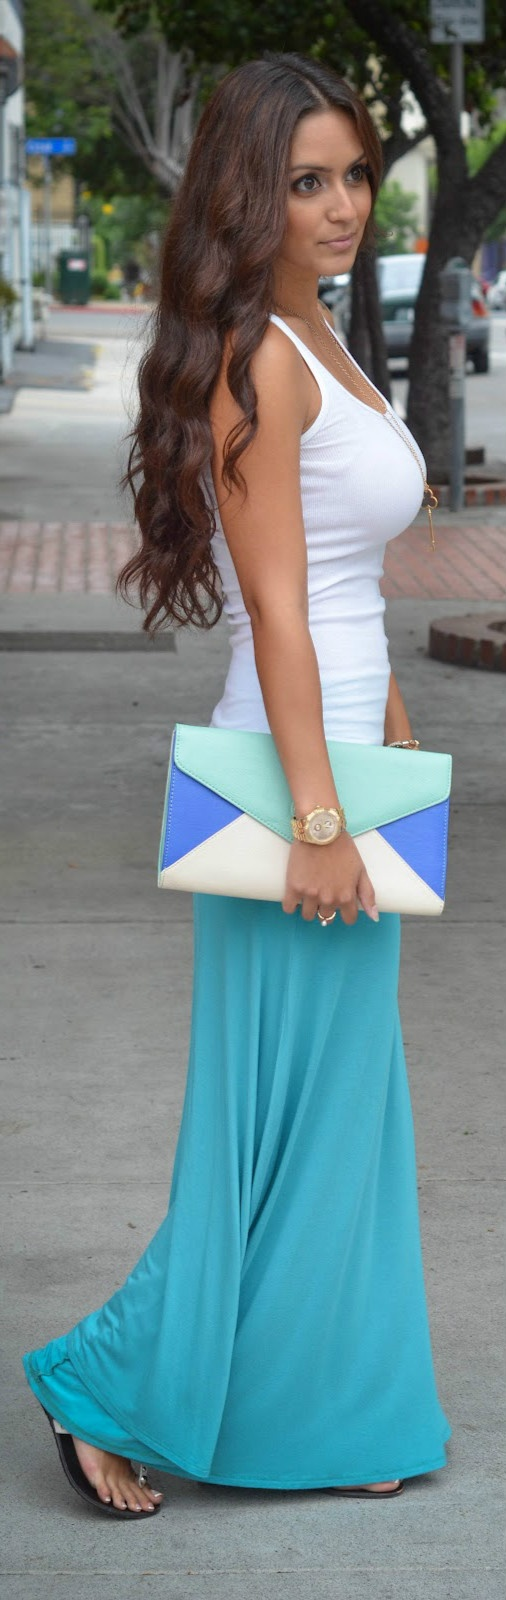 colorful-maxi-white-tank-big-clutch-purse-wallpaper-wp5804668